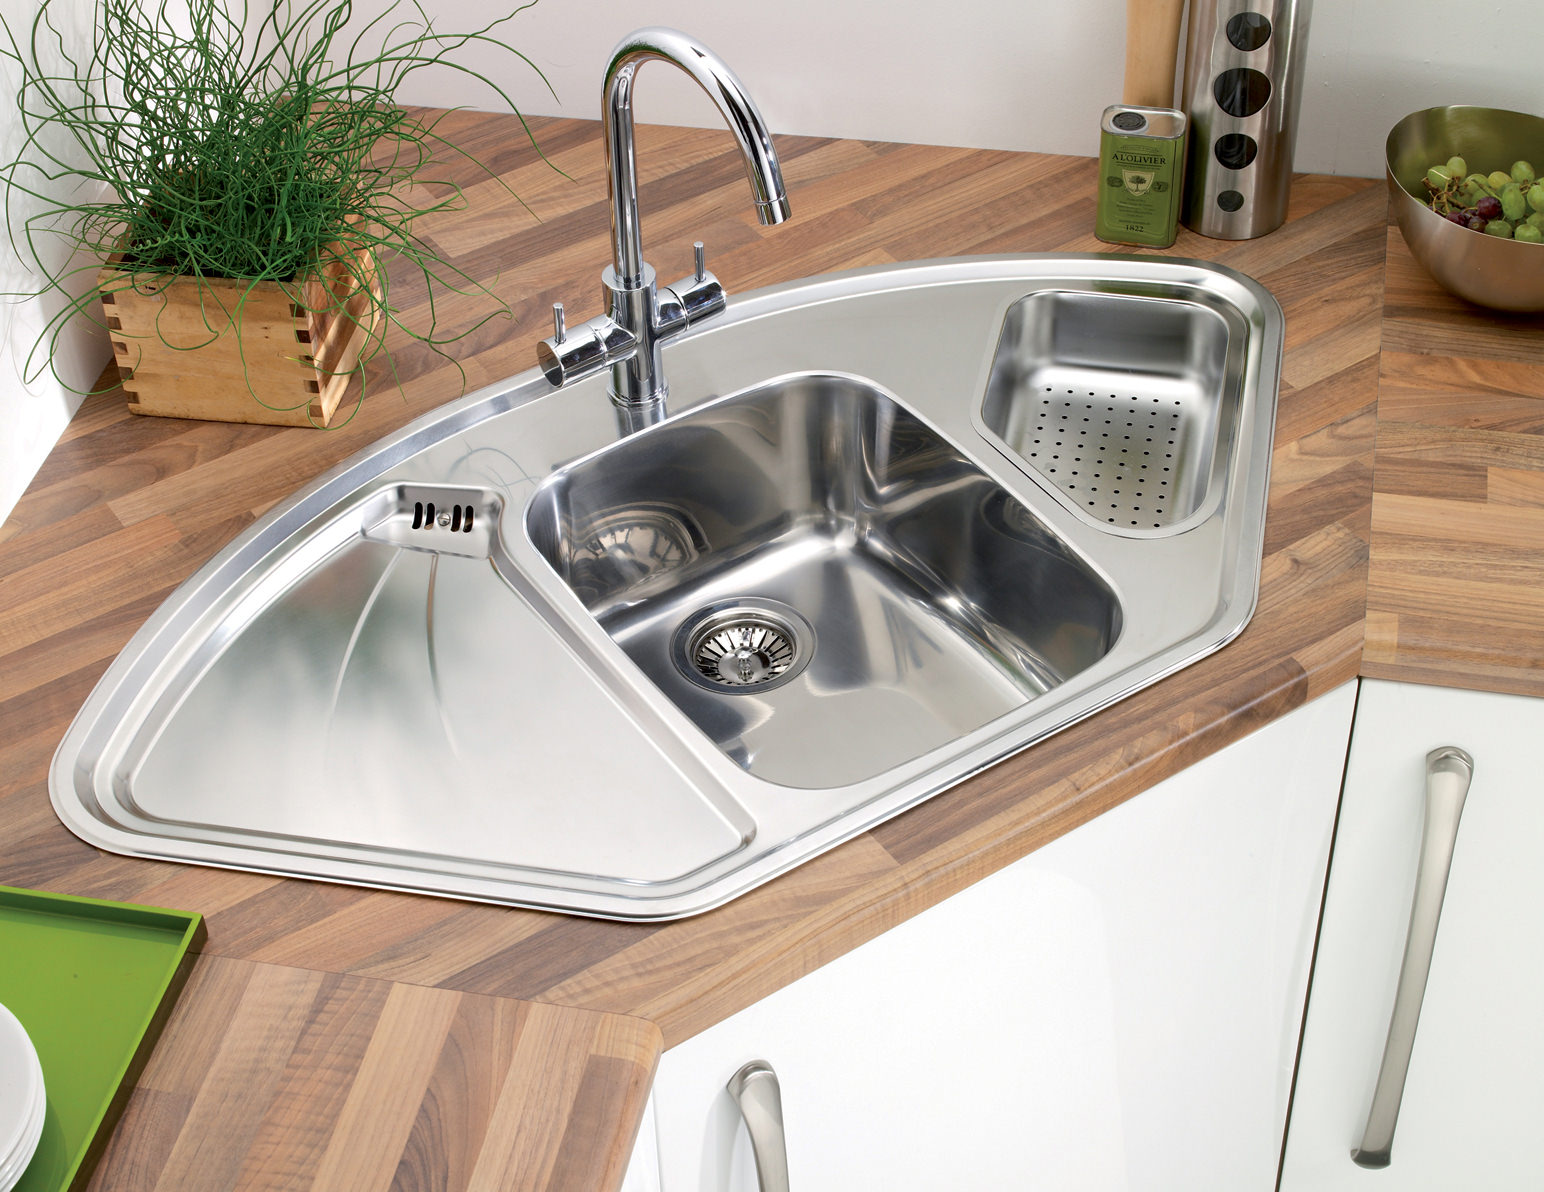 Stainless Steel Corner Sinks For Kitchens : Astracast Lausanne 1.5 Bowl Polished Stainless Steel Corner Inset Sink